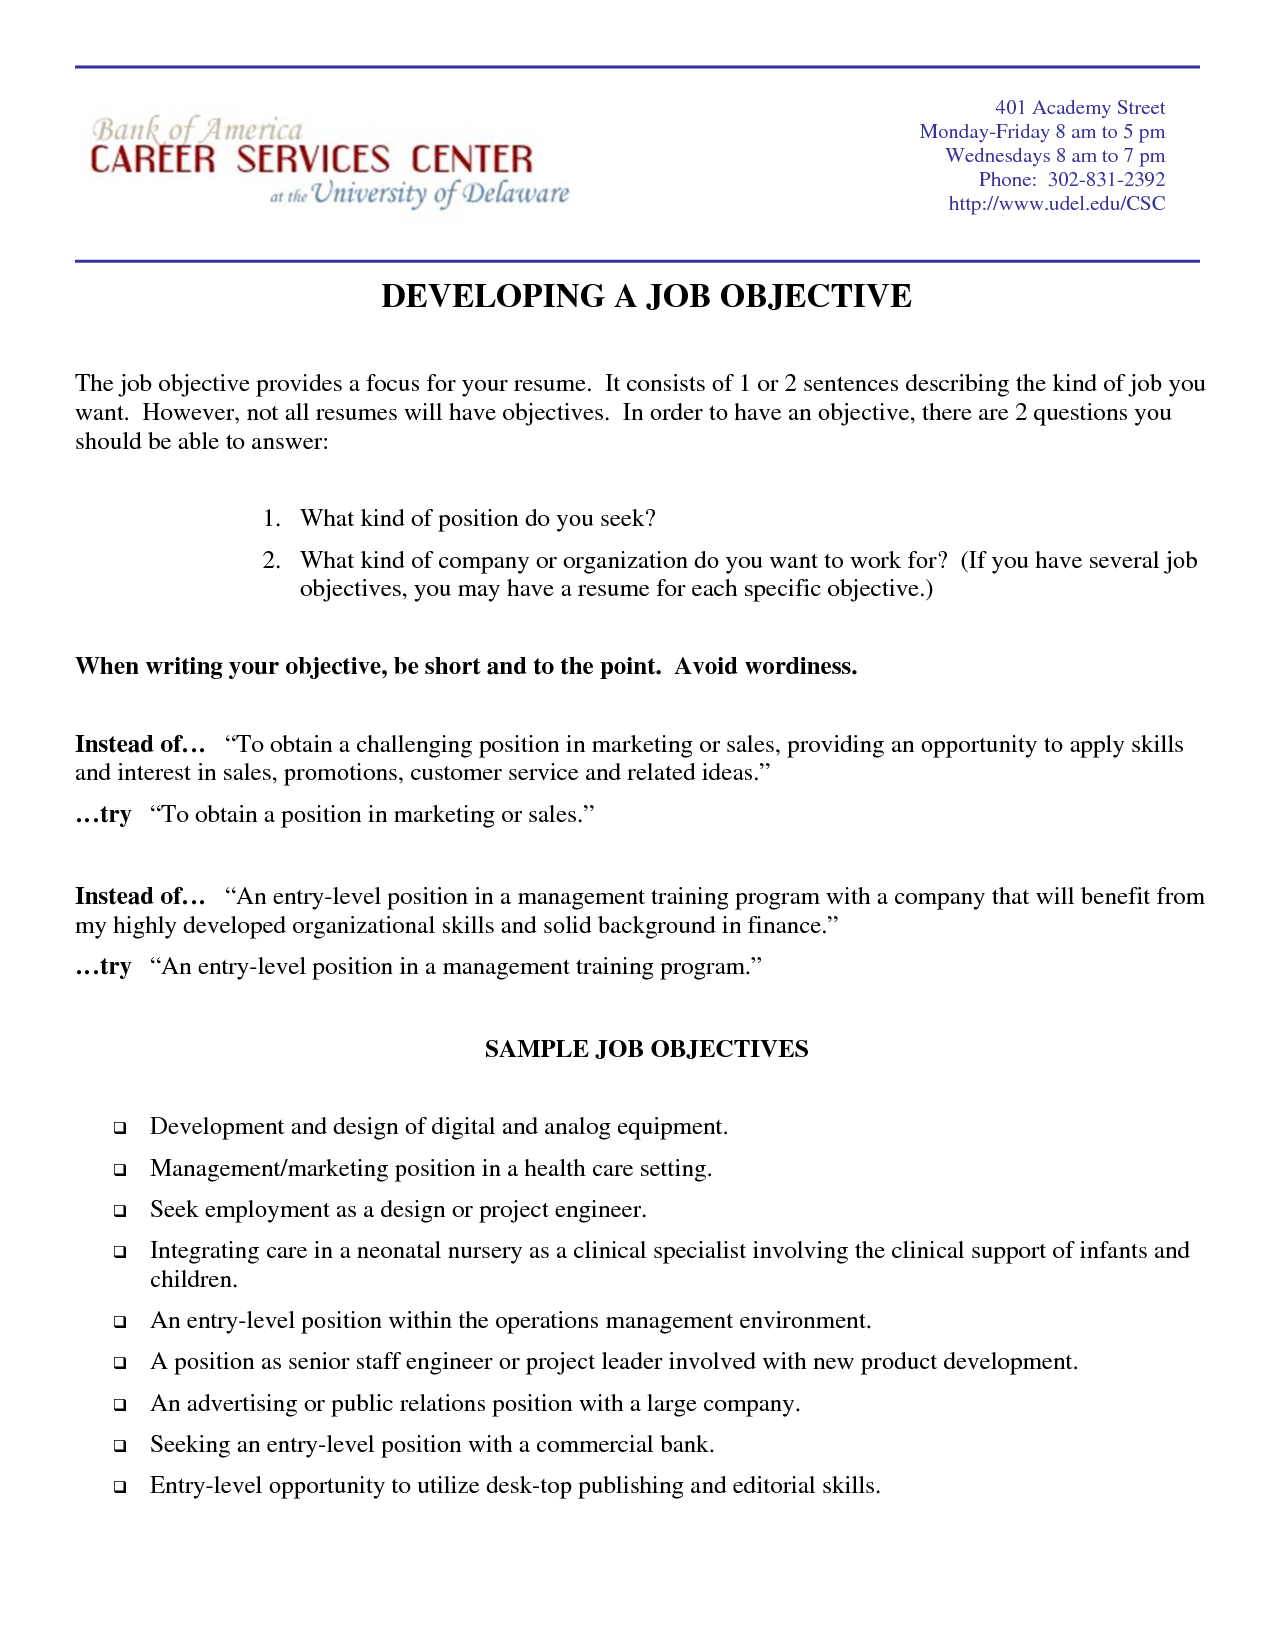 Marketing Resume Objective Samples Resumes Design The Relic  What Is Job Objective